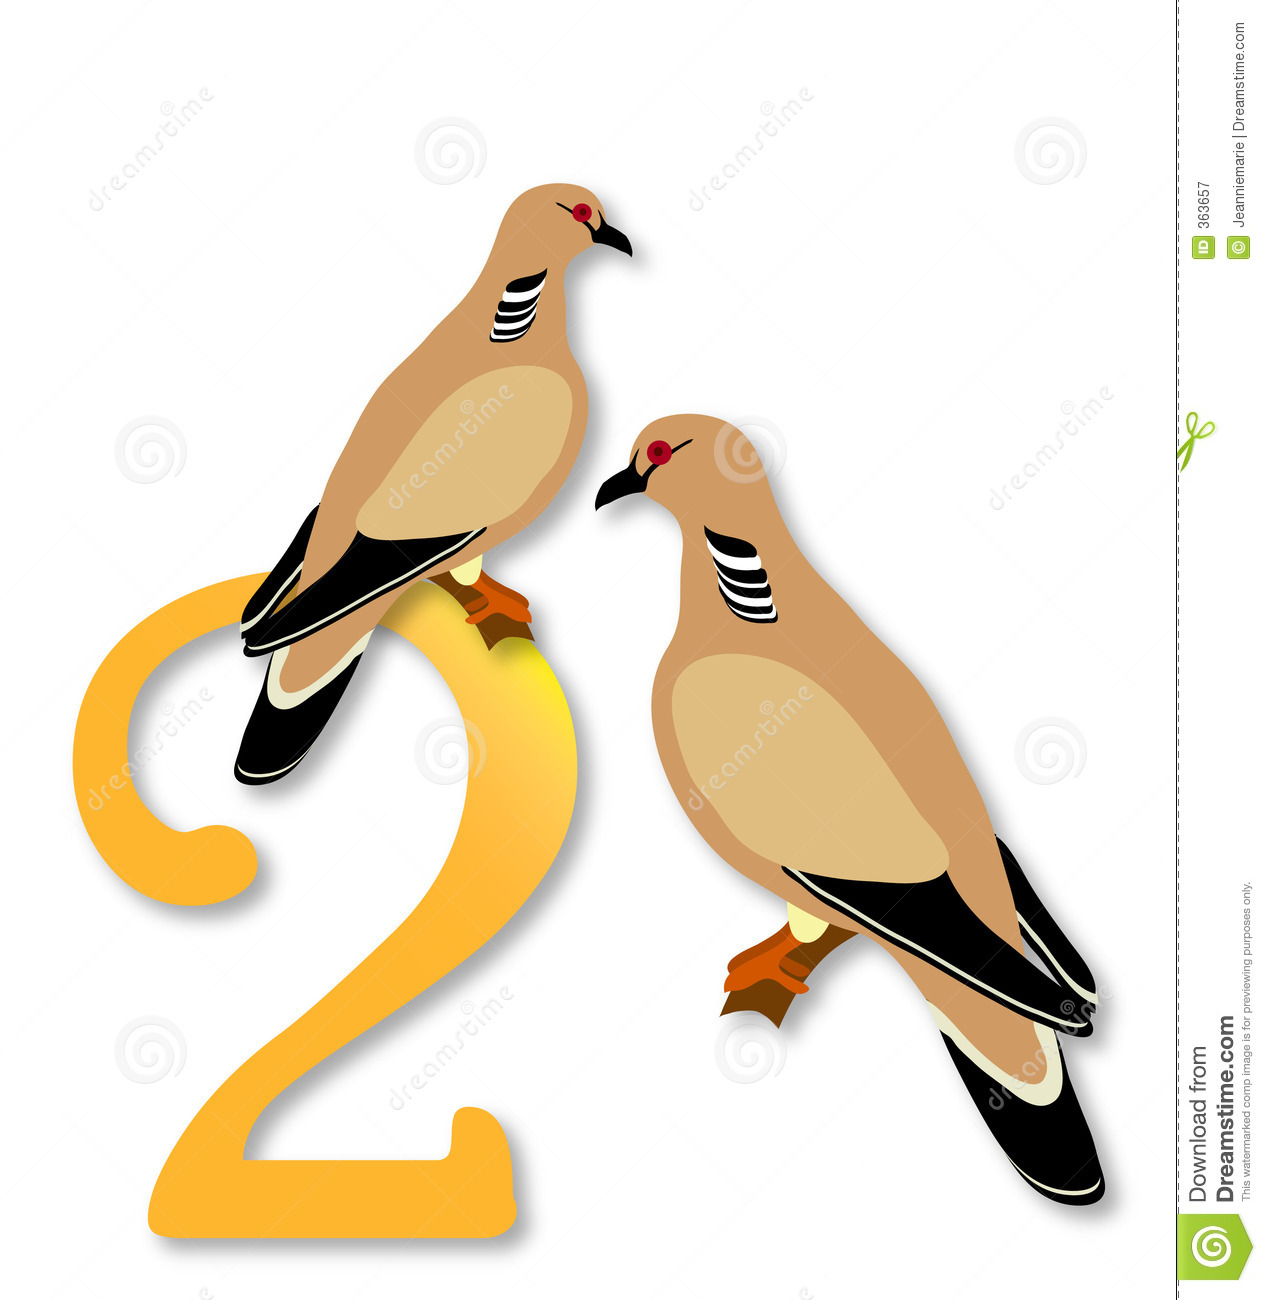 hight resolution of 12 days of christmas 2 turtle doves